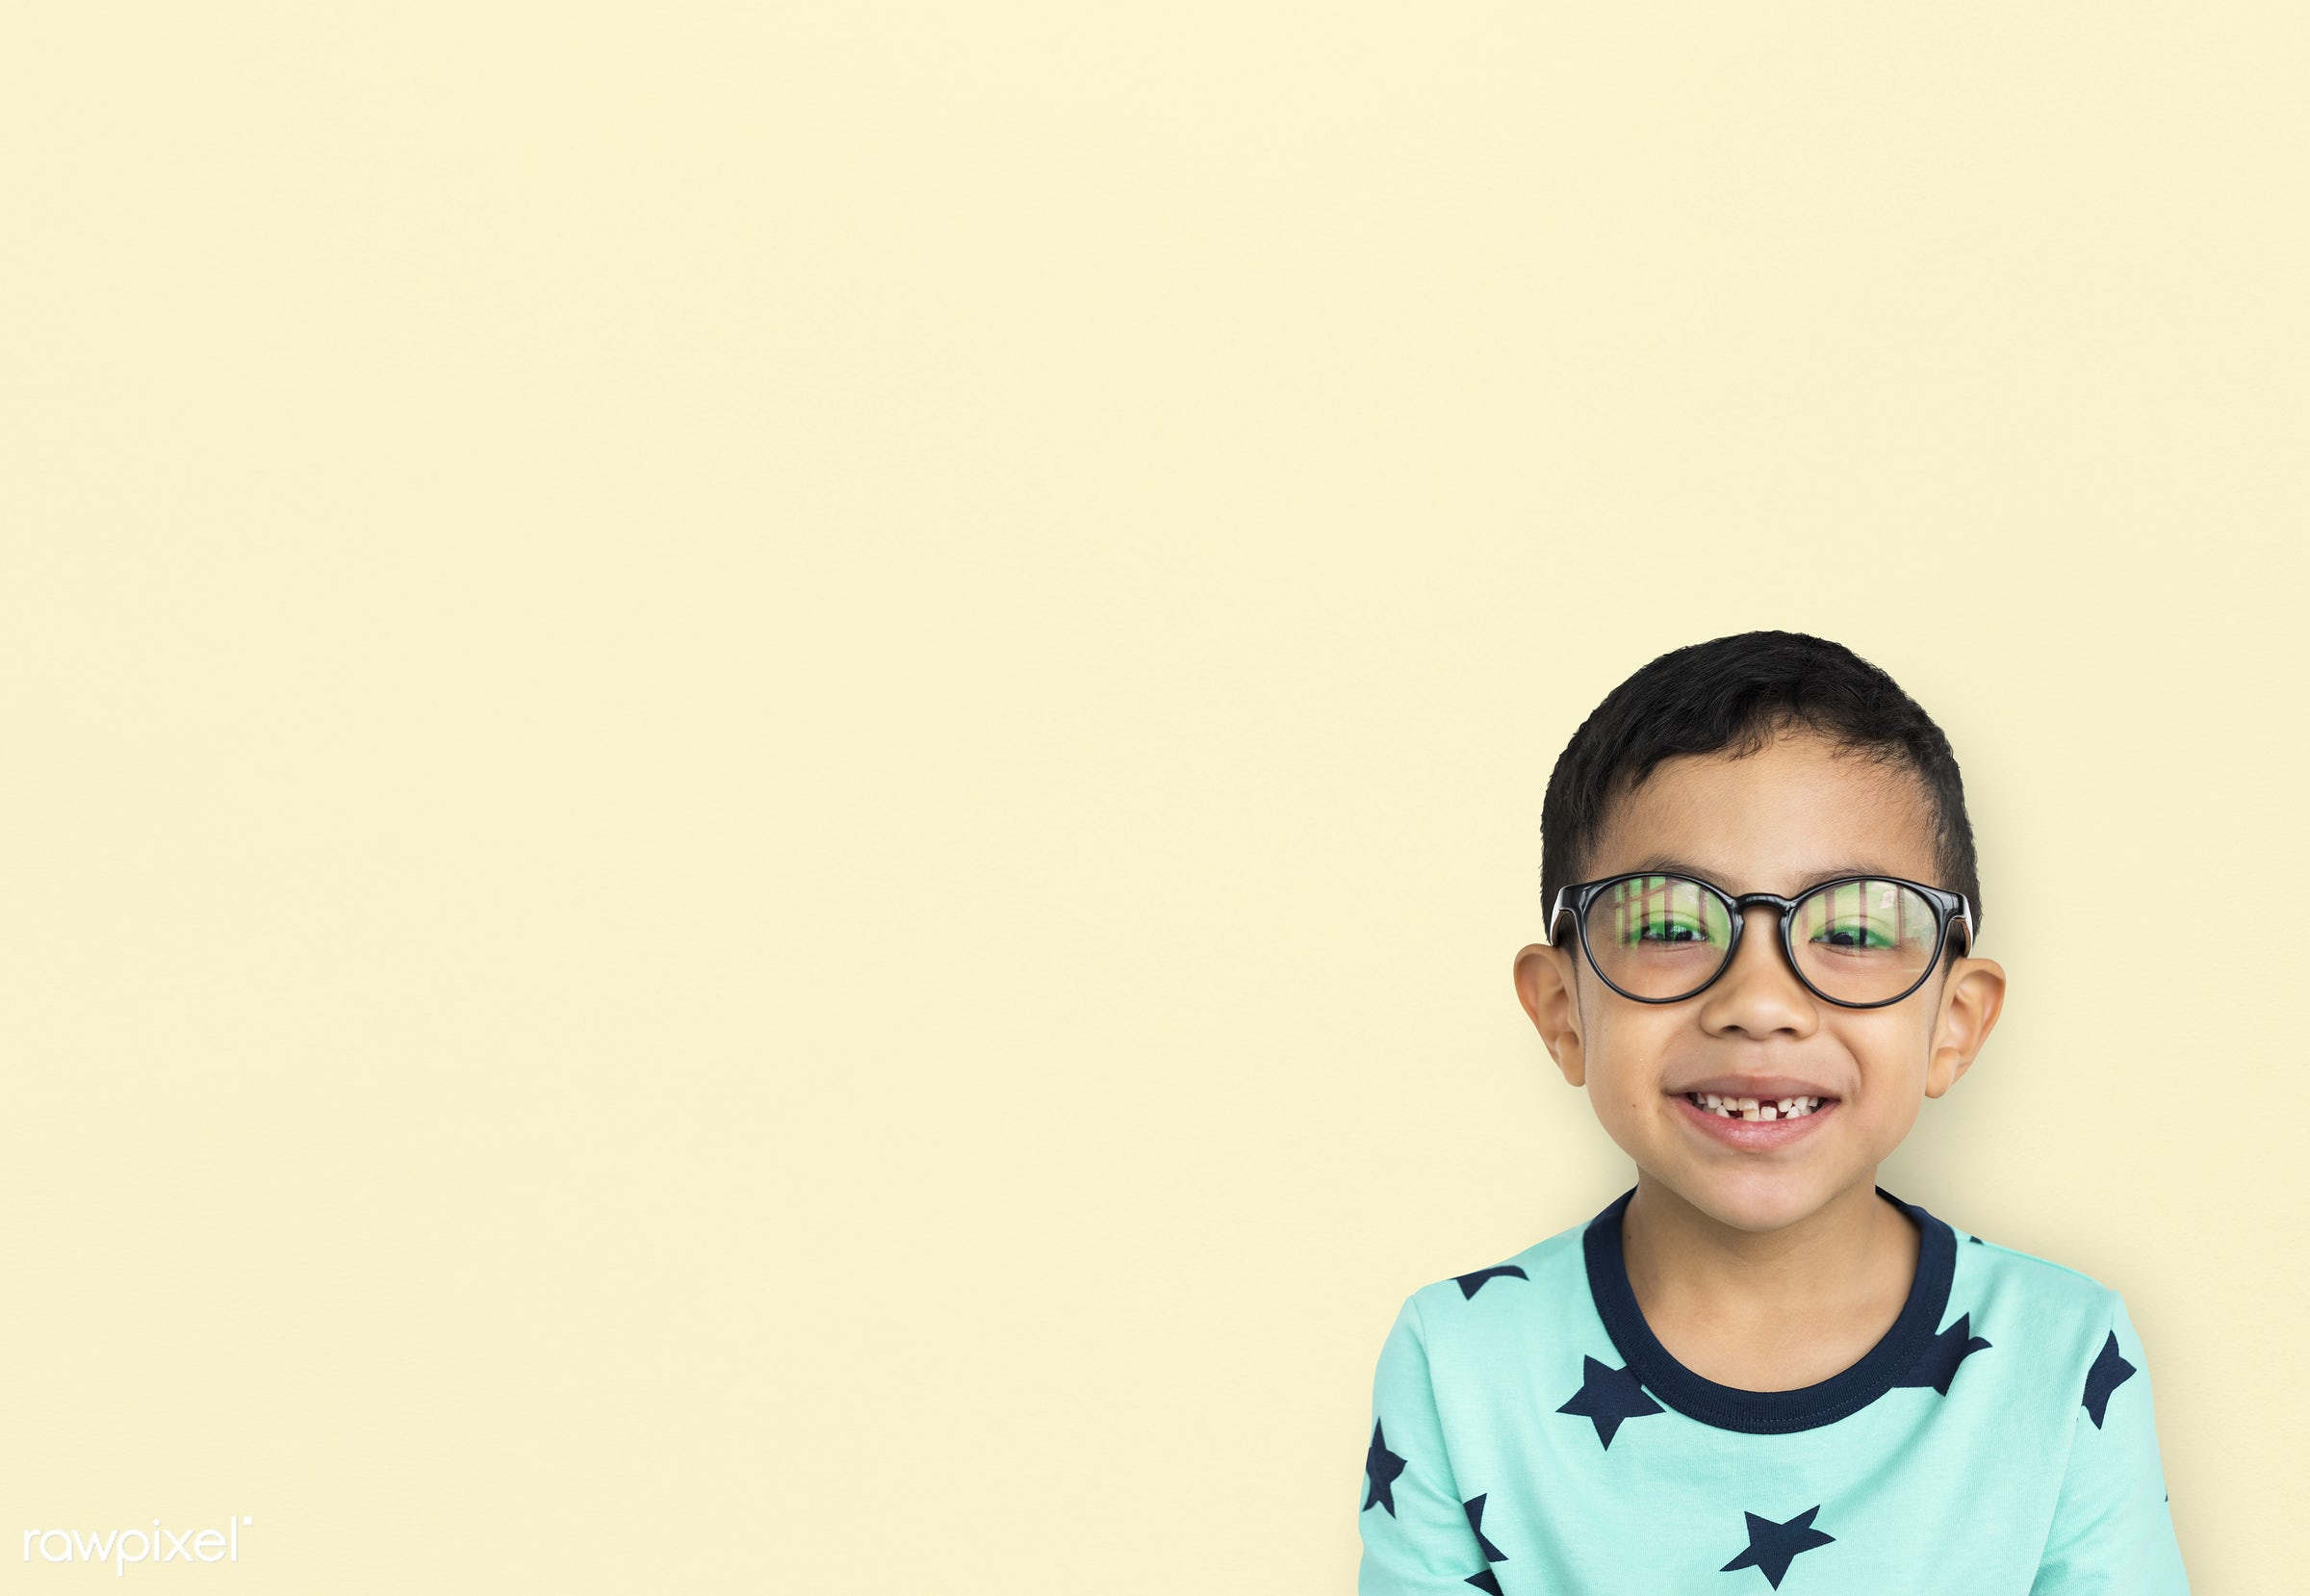 studio, expression, person, little, people, asian, nerd, solo, black hair, childhood, smile, cheerful, alone, isolated,...